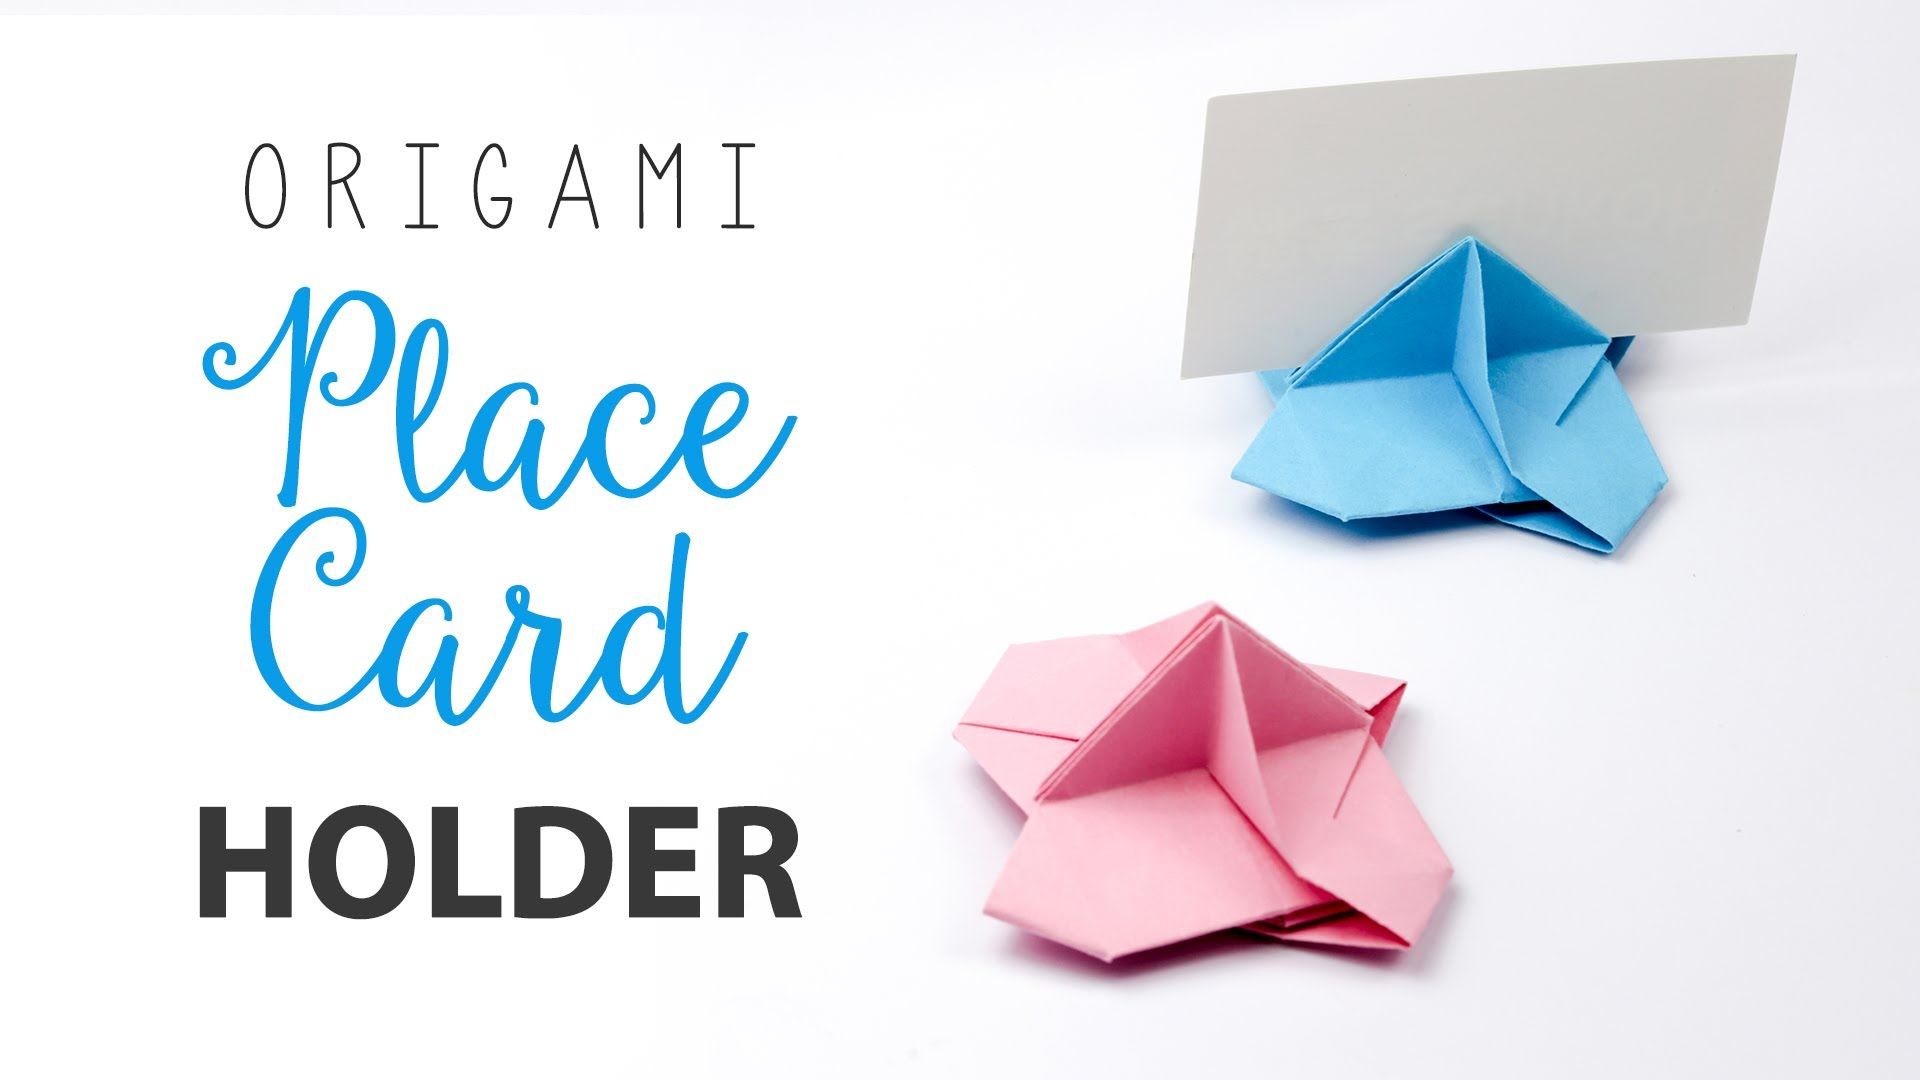 Learn how to make an origami place card holder for weddings ...